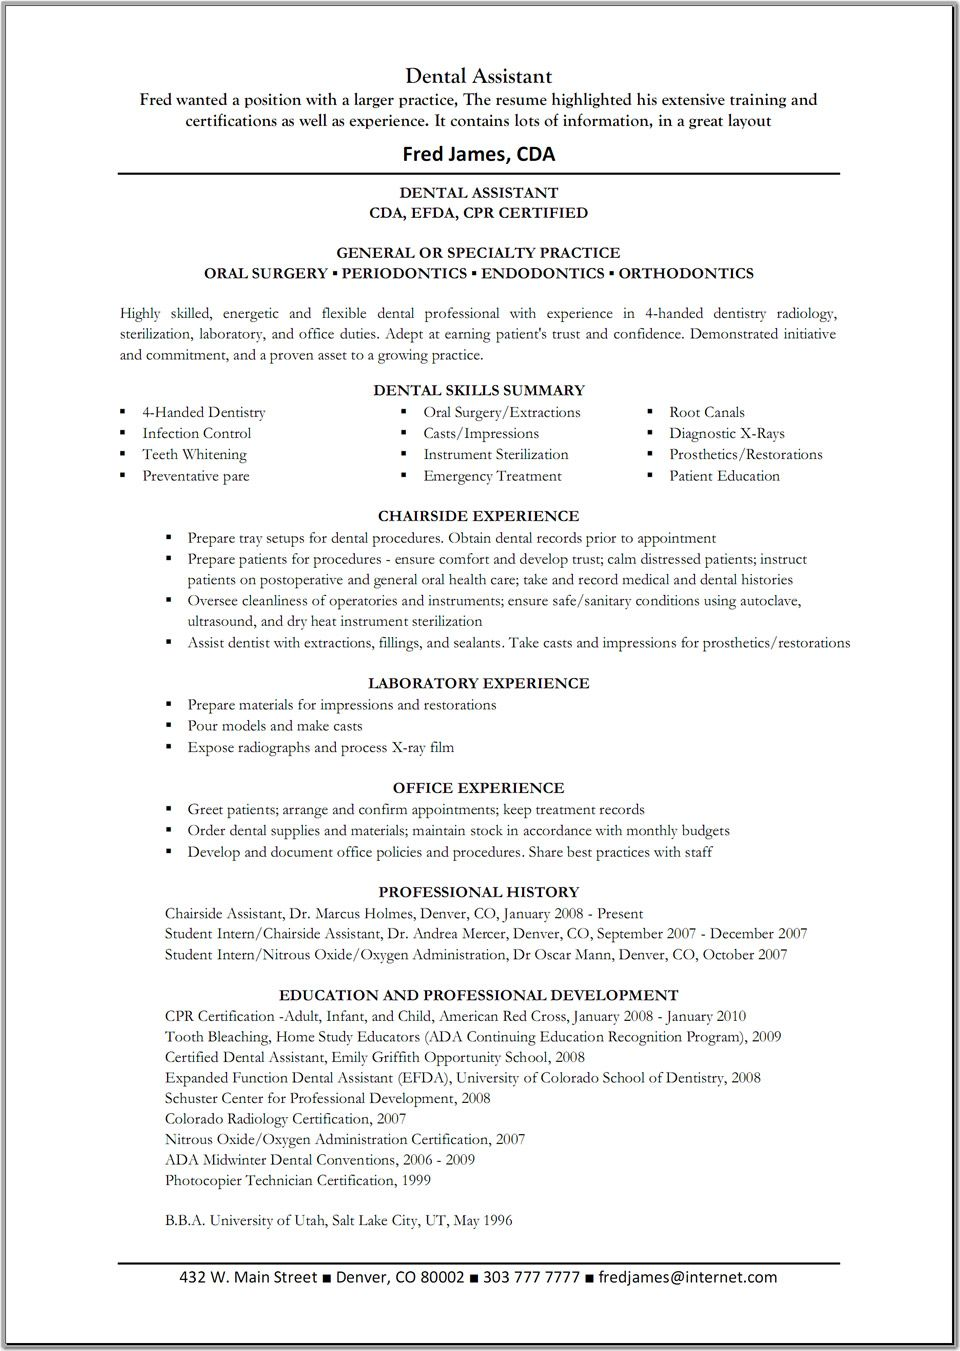 Dental Assistant Resume Template | Great Resume Templates | Dental ...